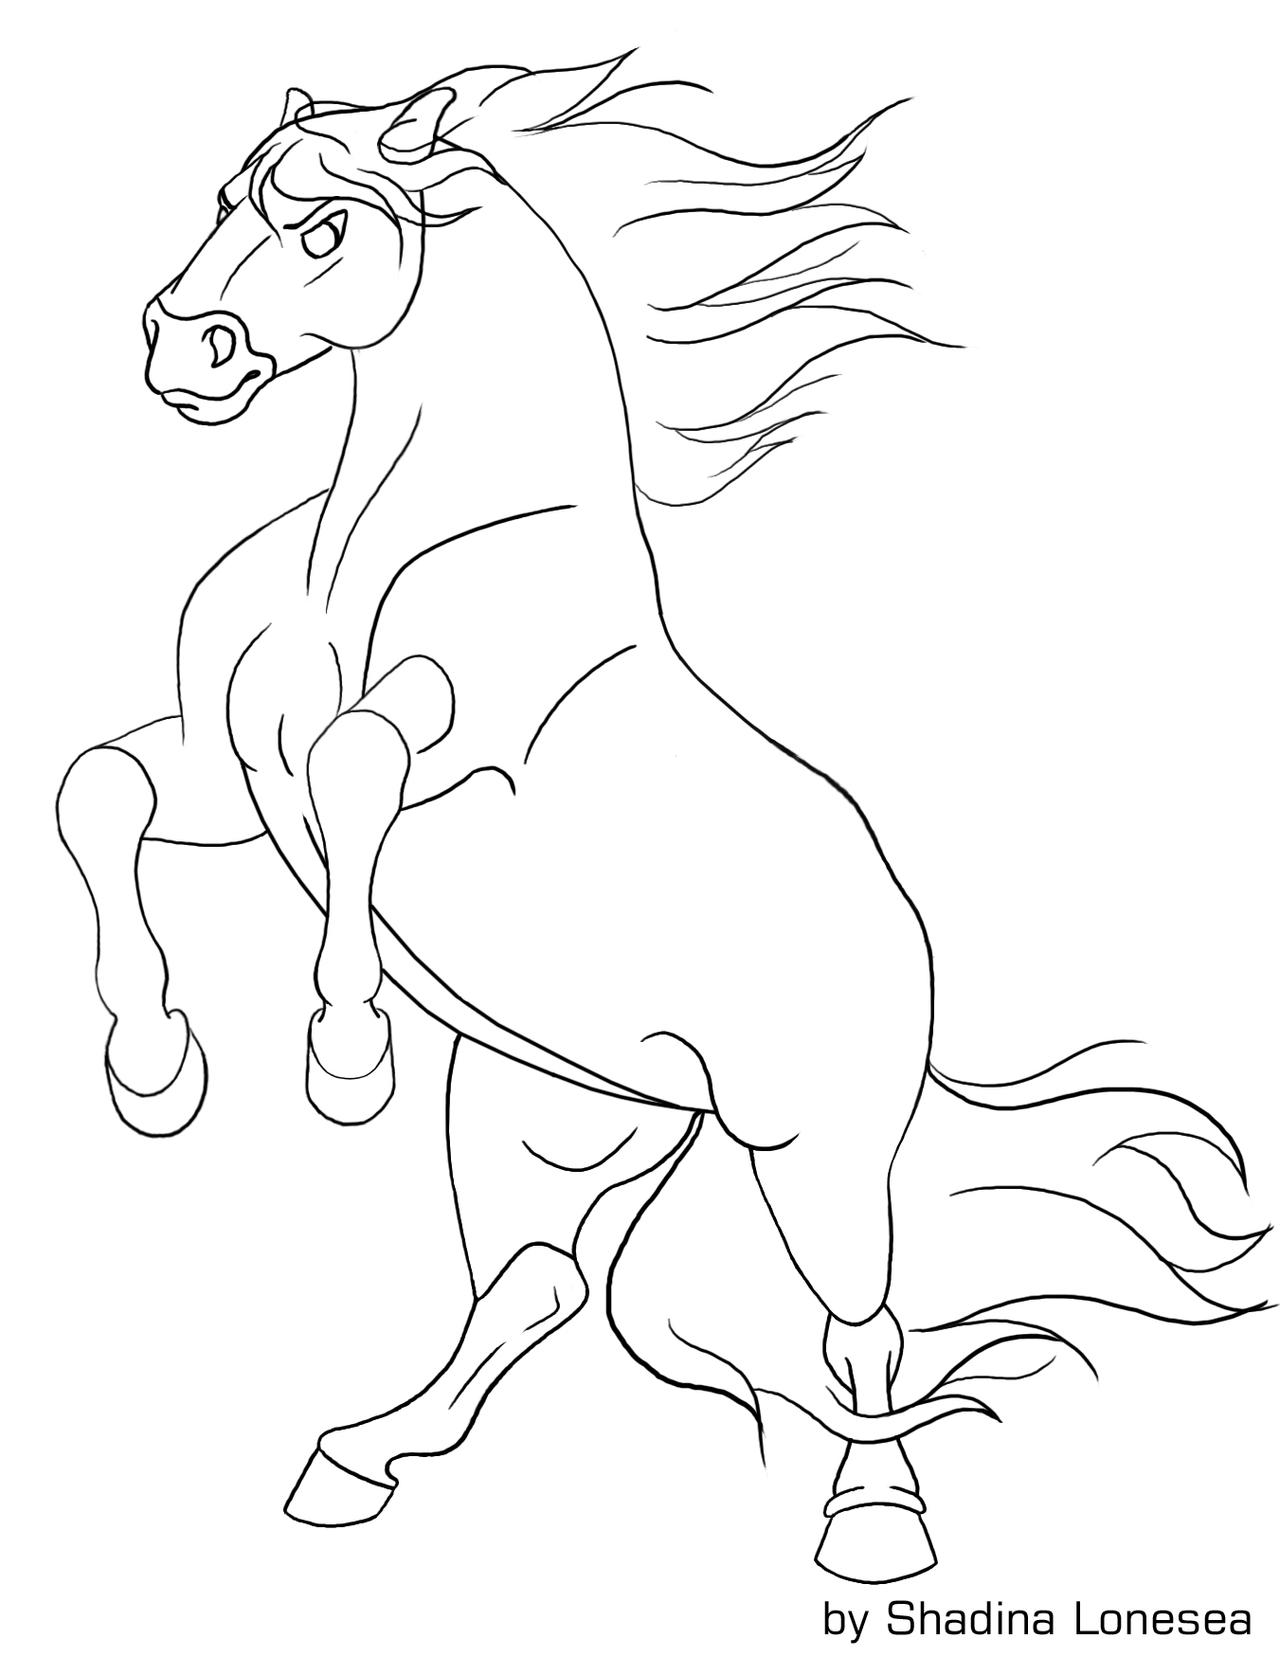 Rearing horse lineart by ShadinaLonesea on DeviantArt